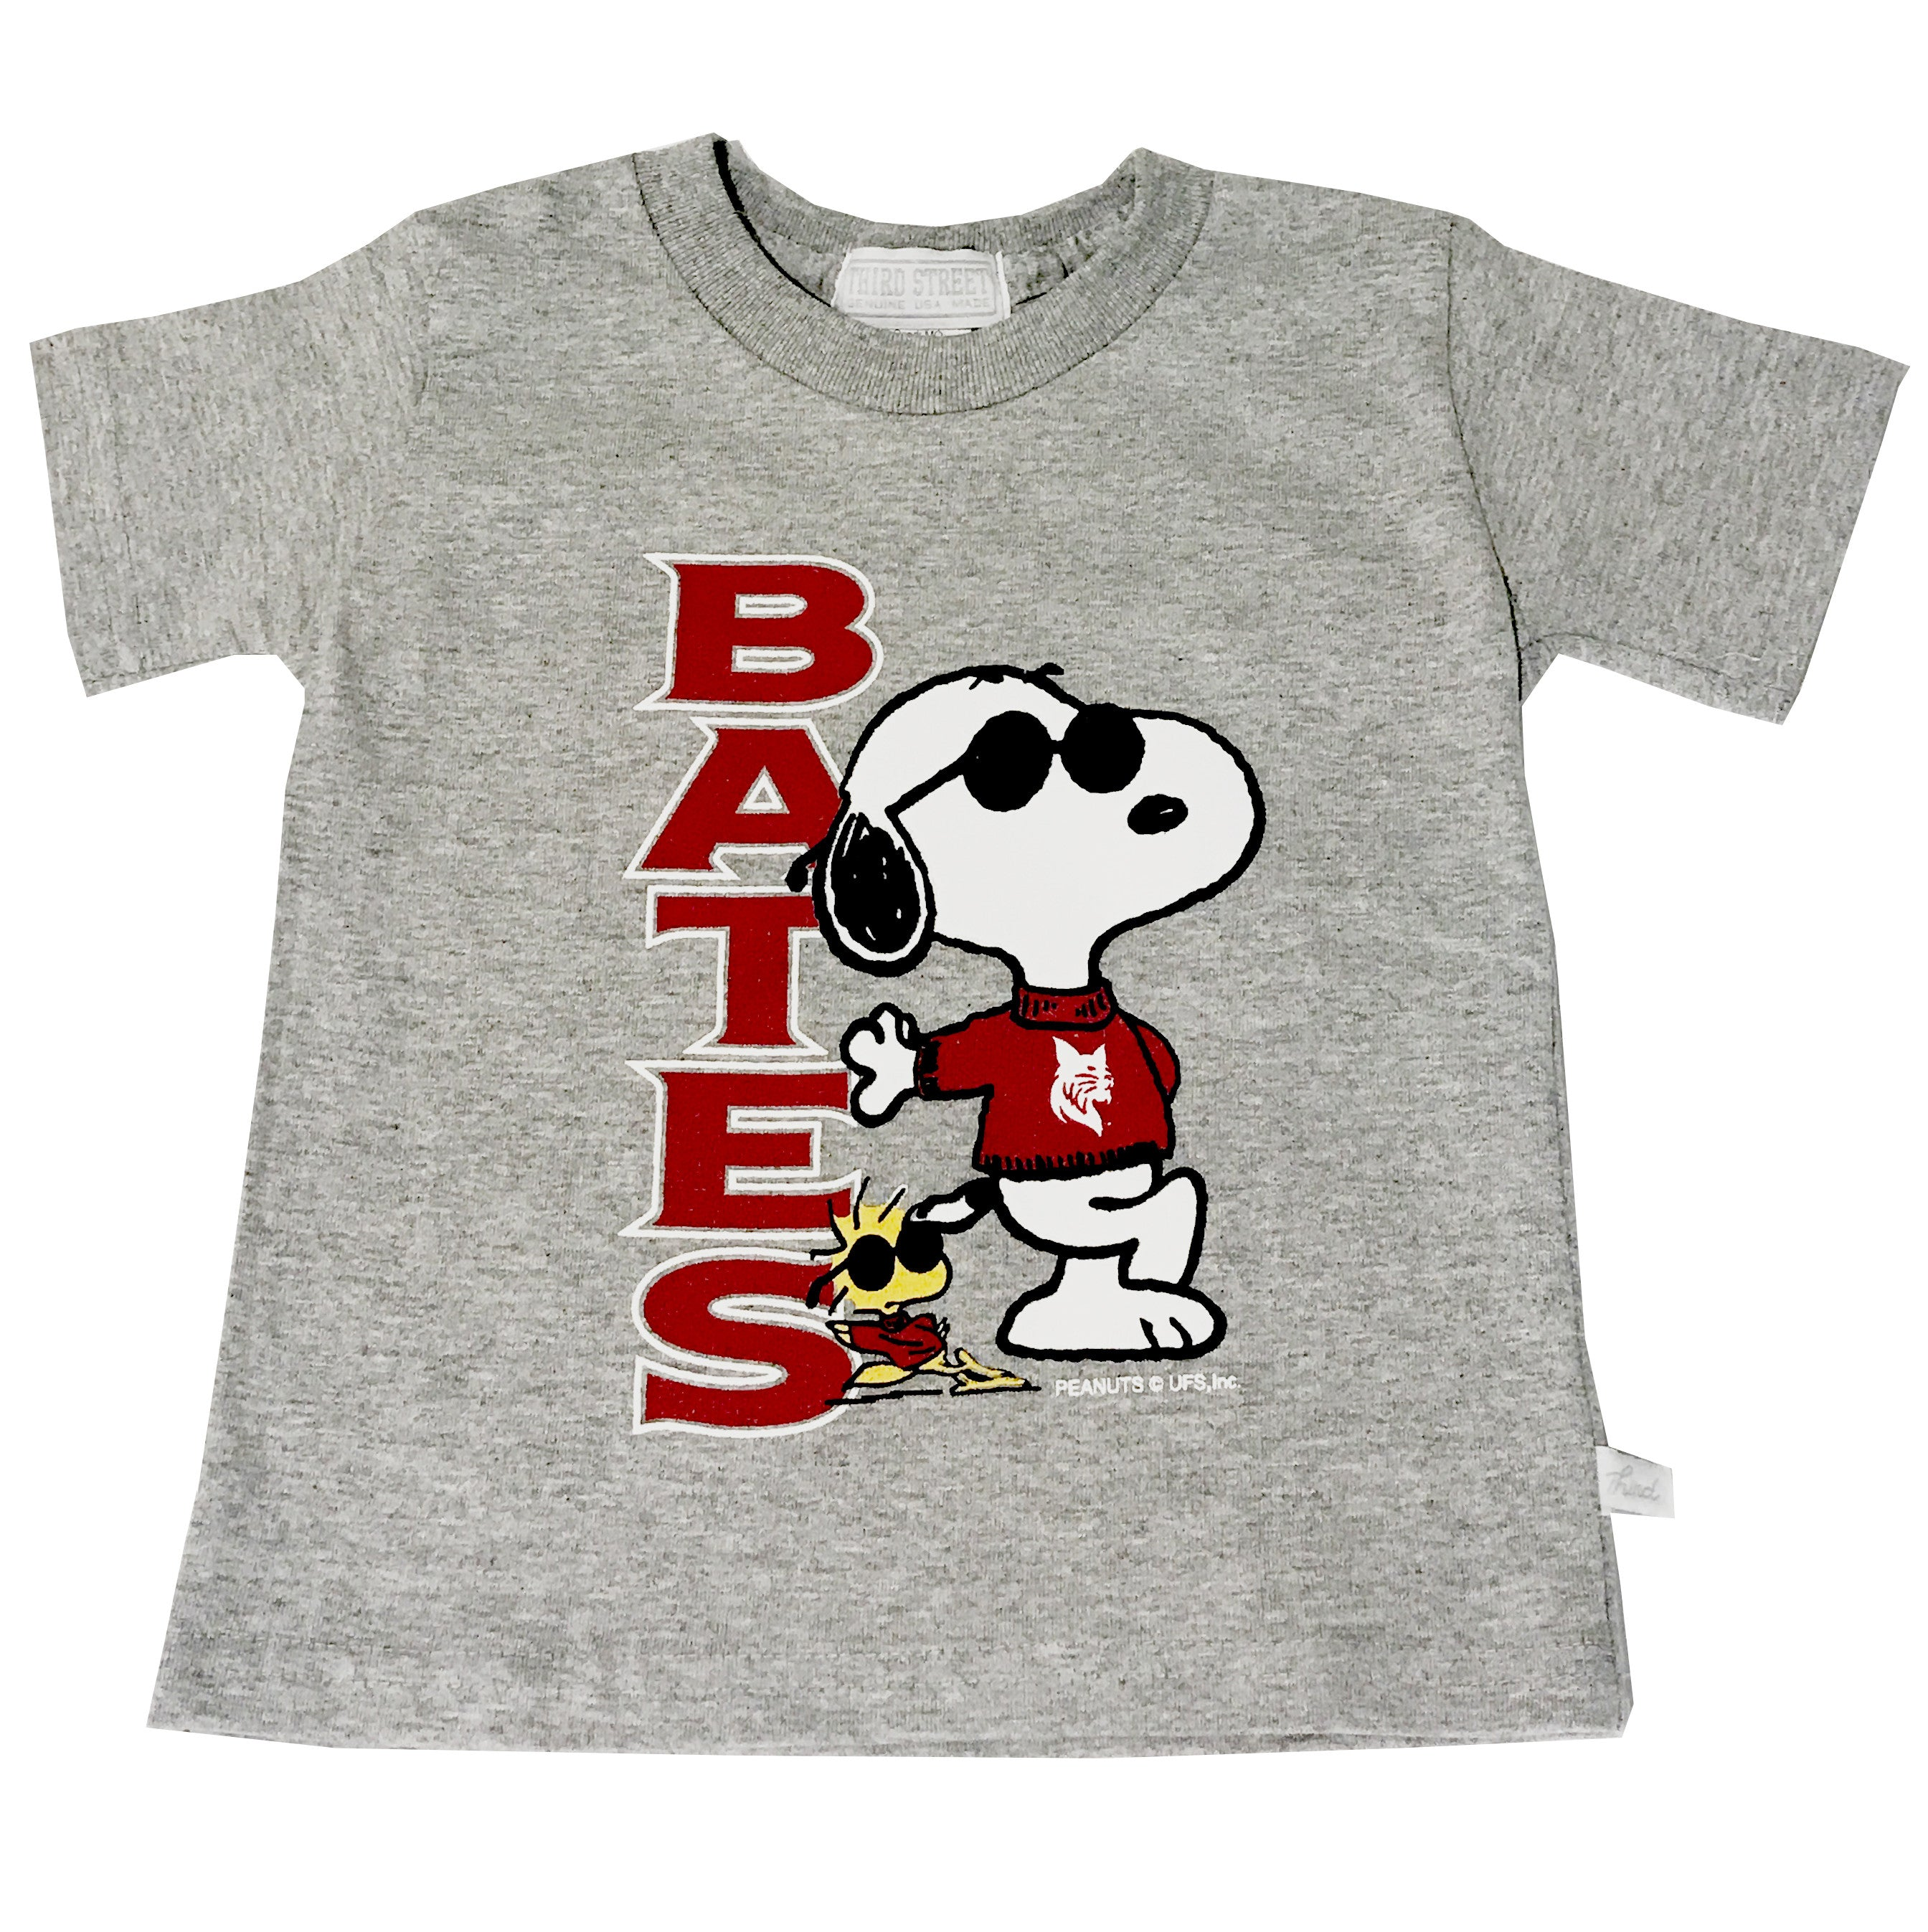 Snoopy Tee For Toddlers - Infant & Toddler Clothing